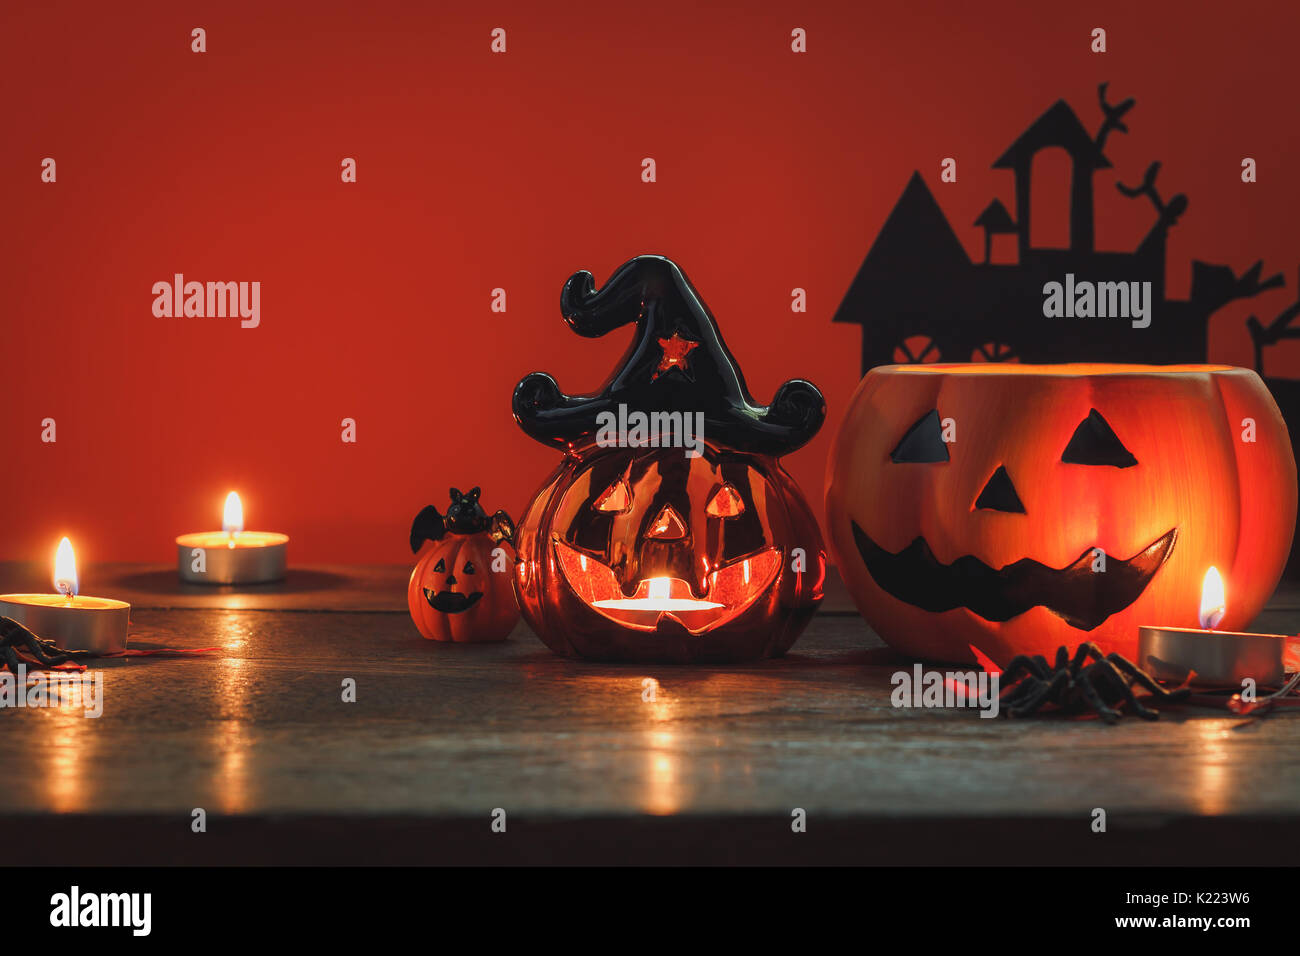 Sign And Decoration Of Happy Halloween Festival ConceptThe Object Mix Variety On Modern Rustic Wood Office Desk The Orange Wallpaper Backgroun